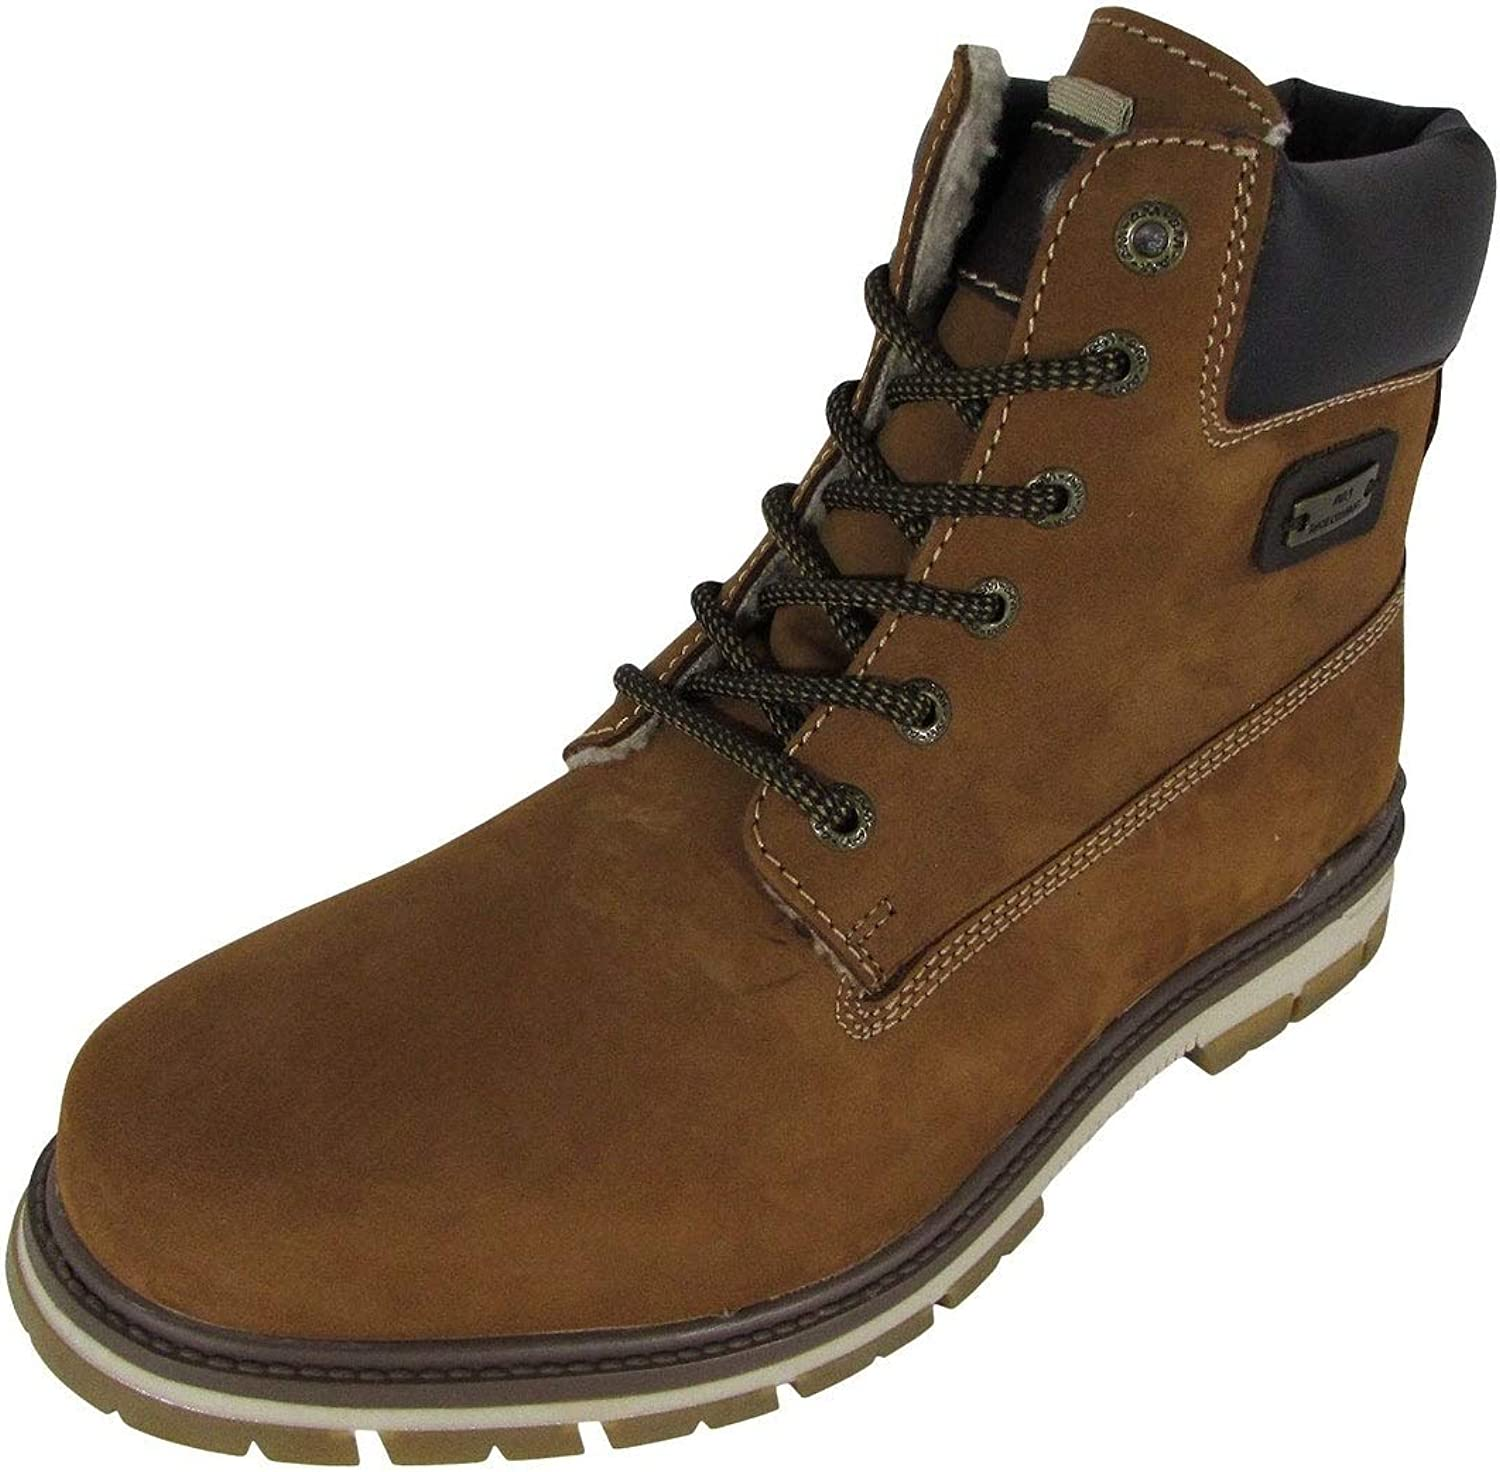 AM Shoes Mens Casual Lace Up Work Boot Shoes